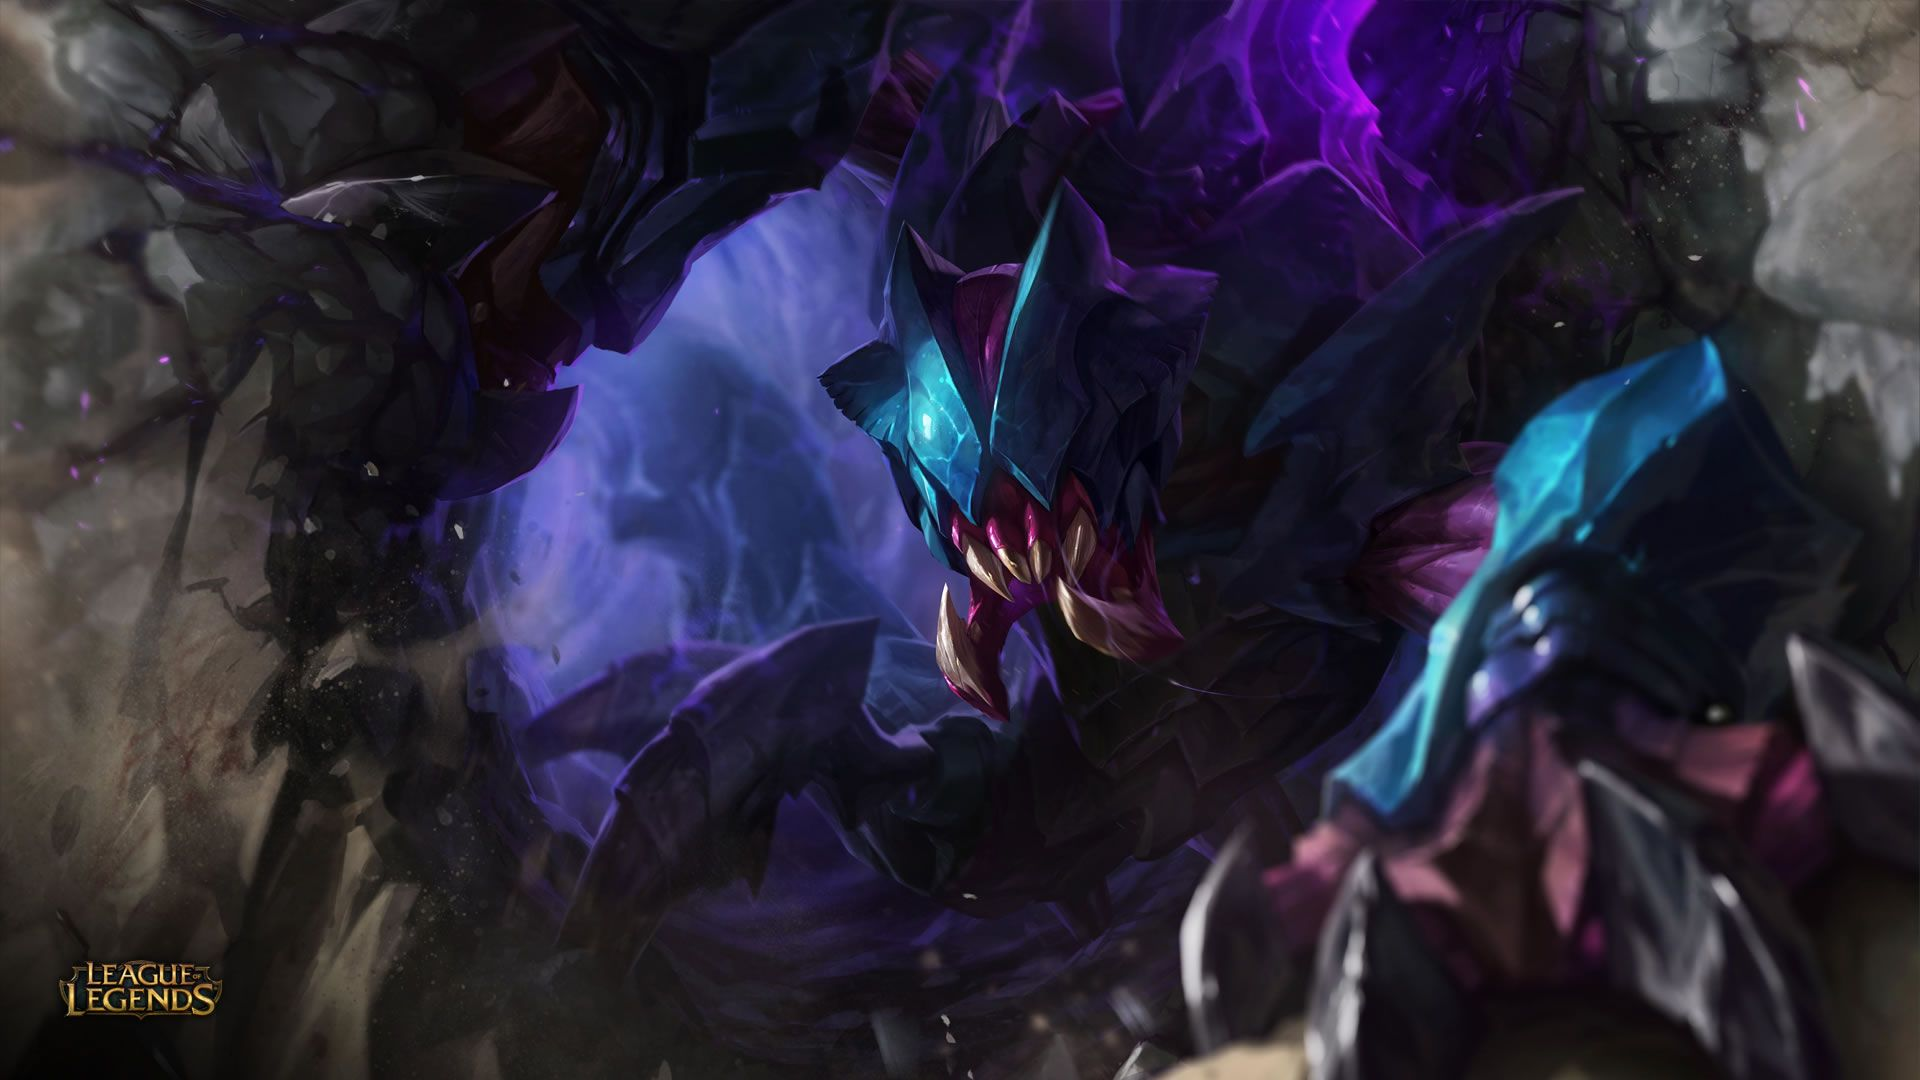 runes lol s9 season 9 2019 all champions for league of legends - 1215×717